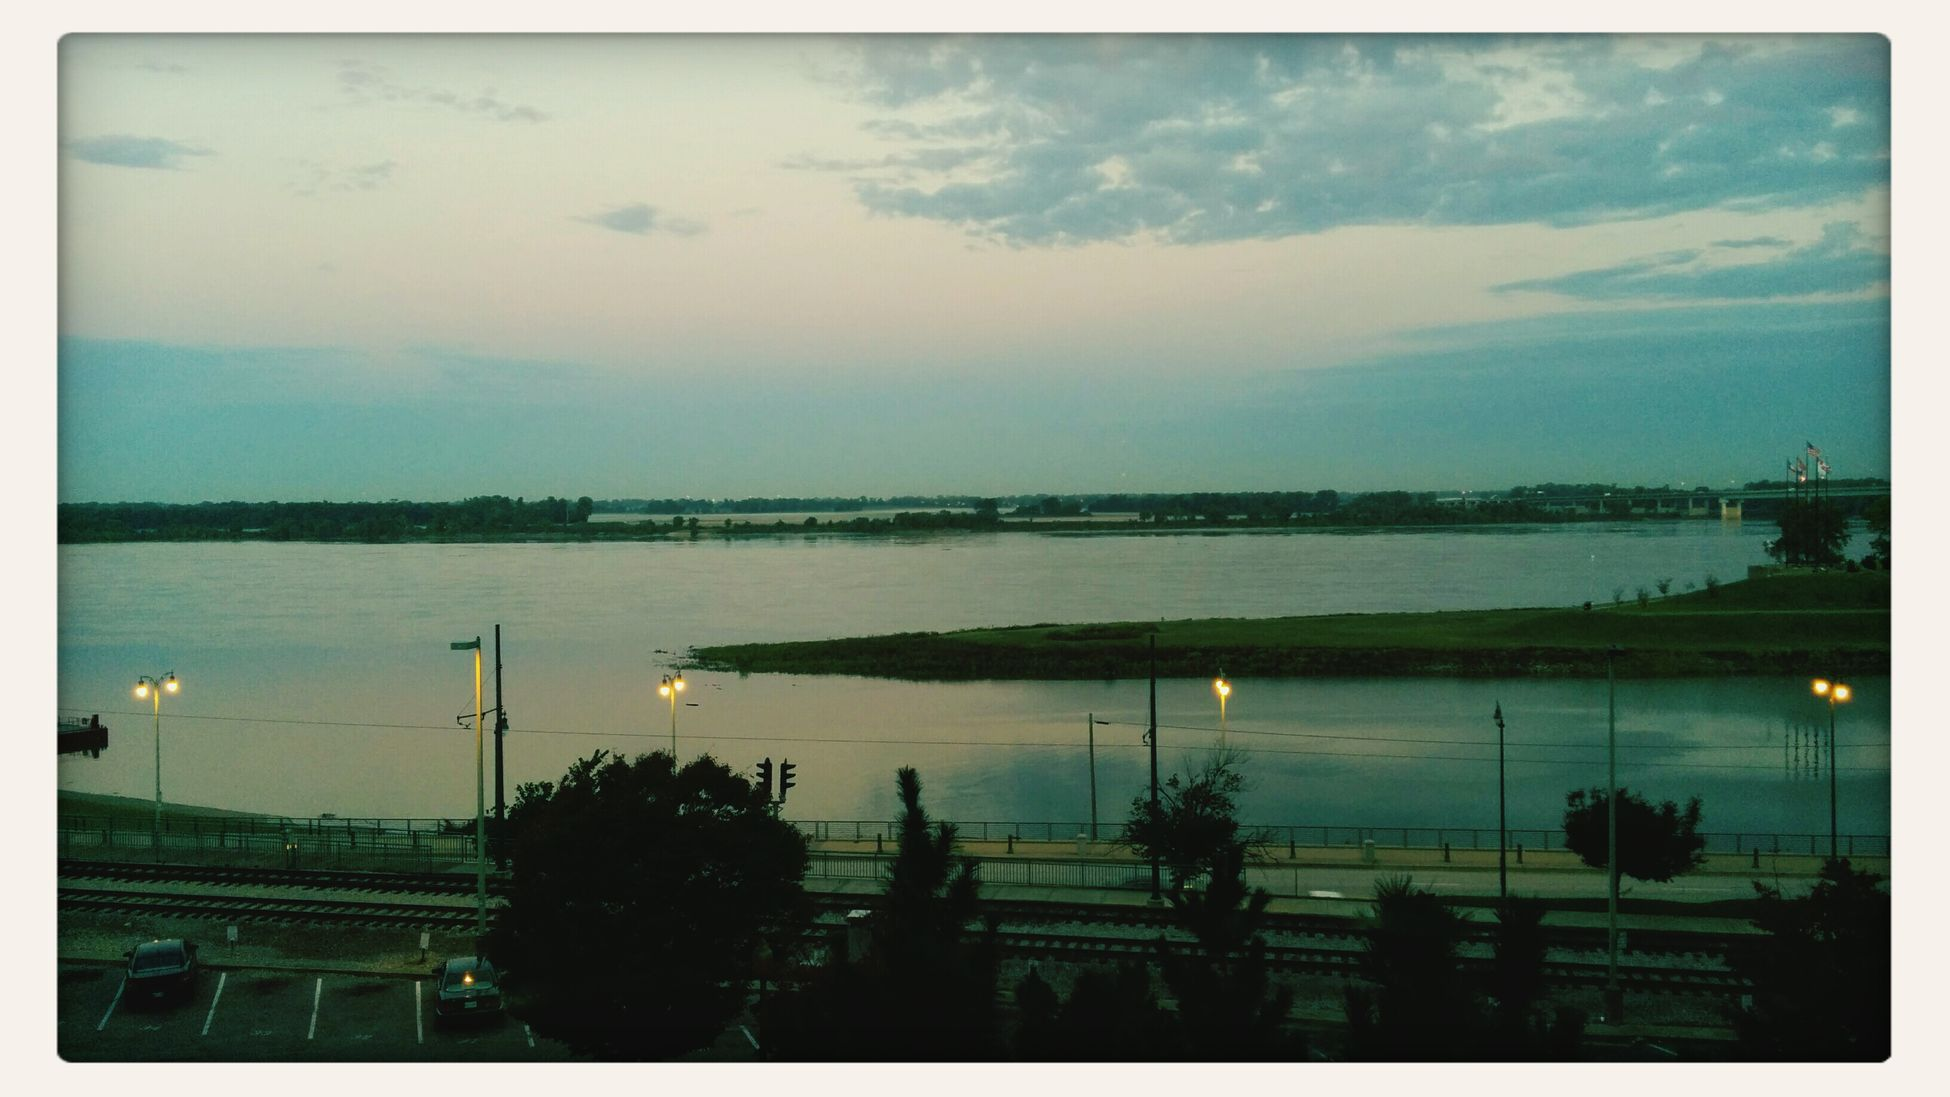 7am the sun slowly rises on this lowely river town Memphis, Mud Island, Pretty Pictures